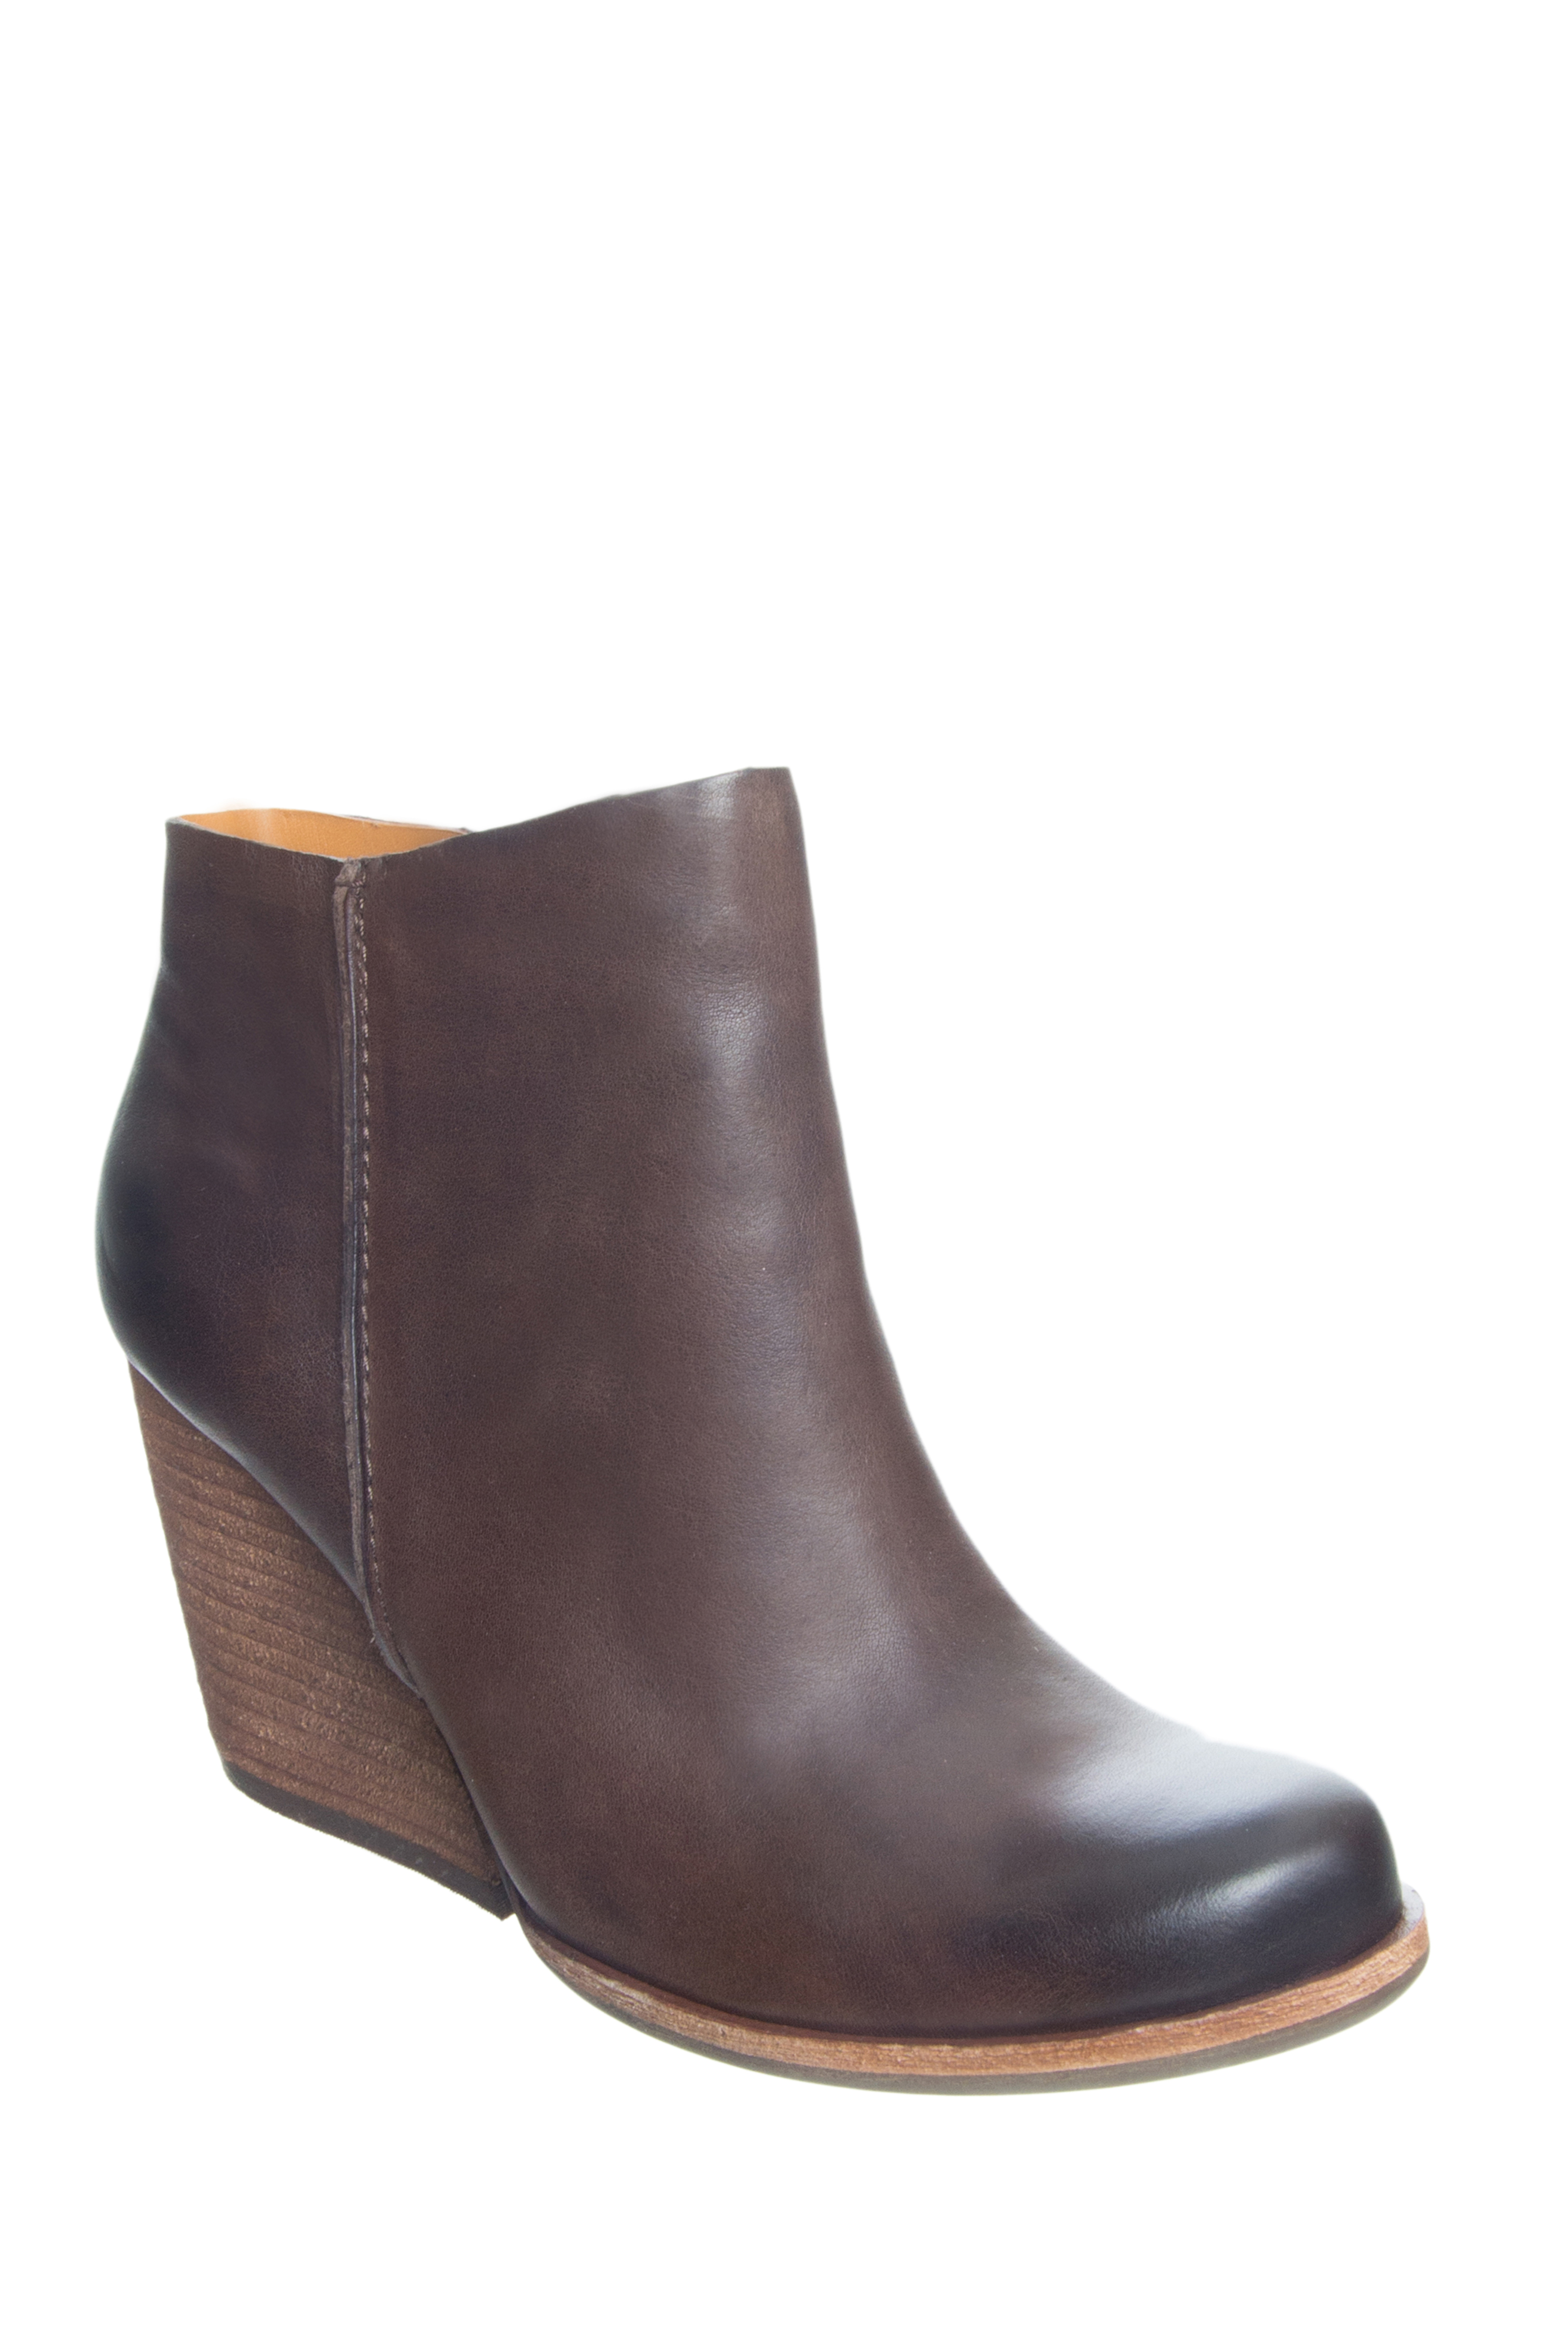 Kork-Ease Natalya High Heel Booties - Dark Brown